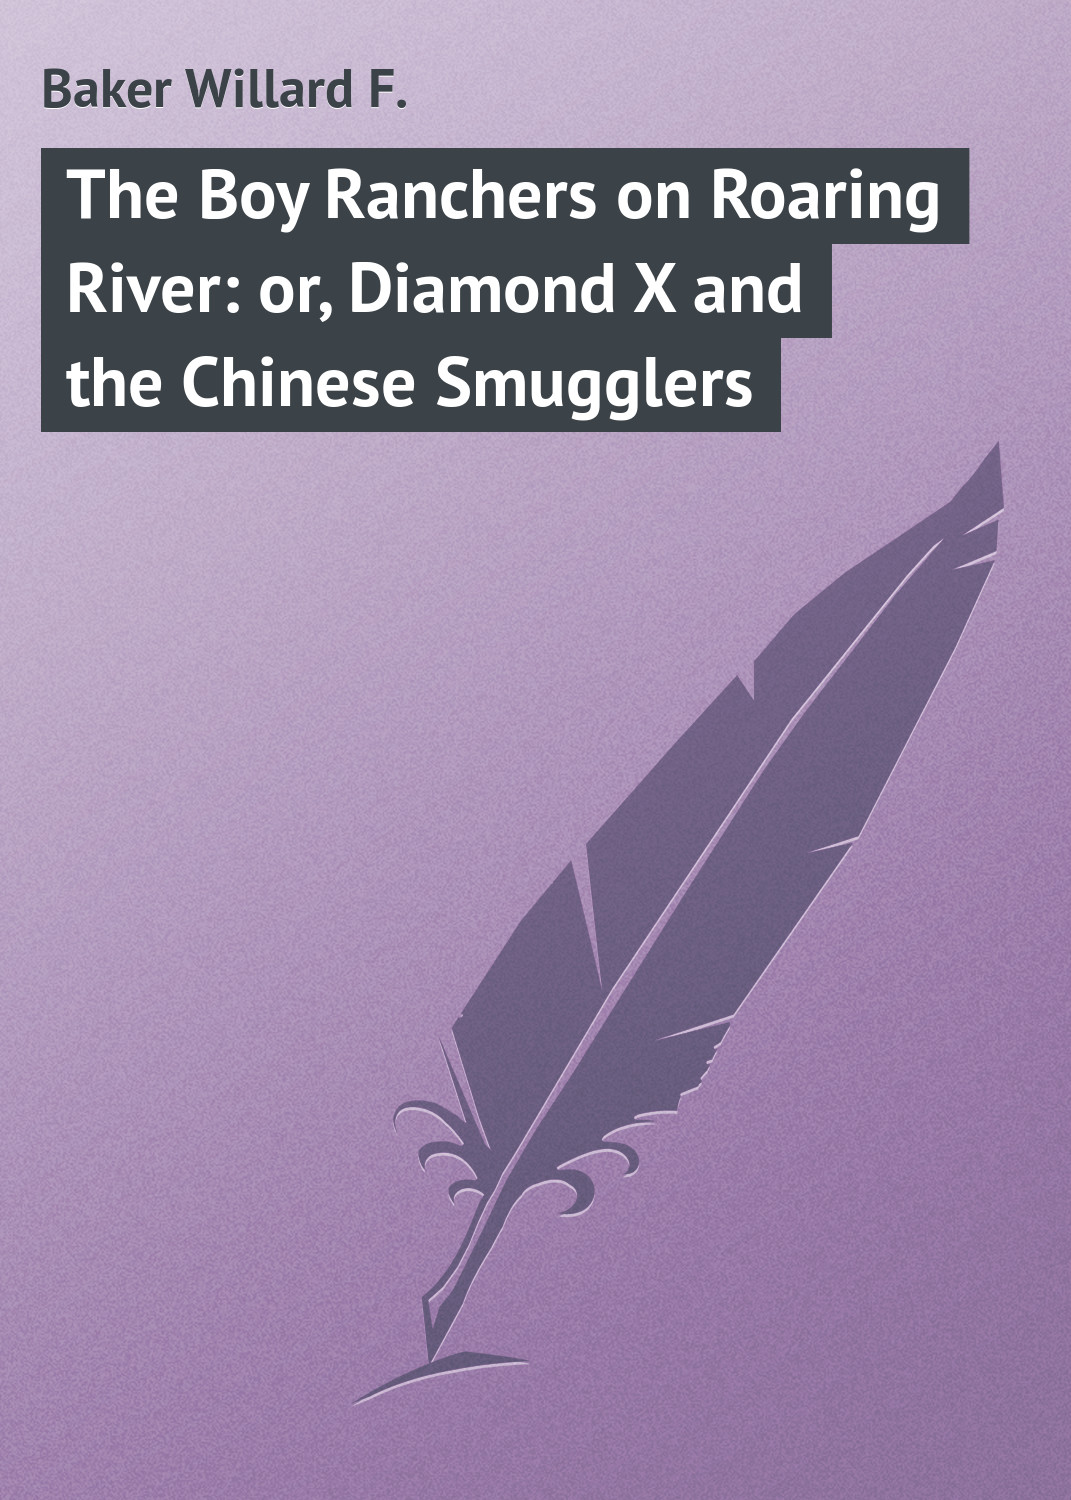 Baker Willard F. The Boy Ranchers on Roaring River: or, Diamond X and the Chinese Smugglers collins essential chinese dictionary